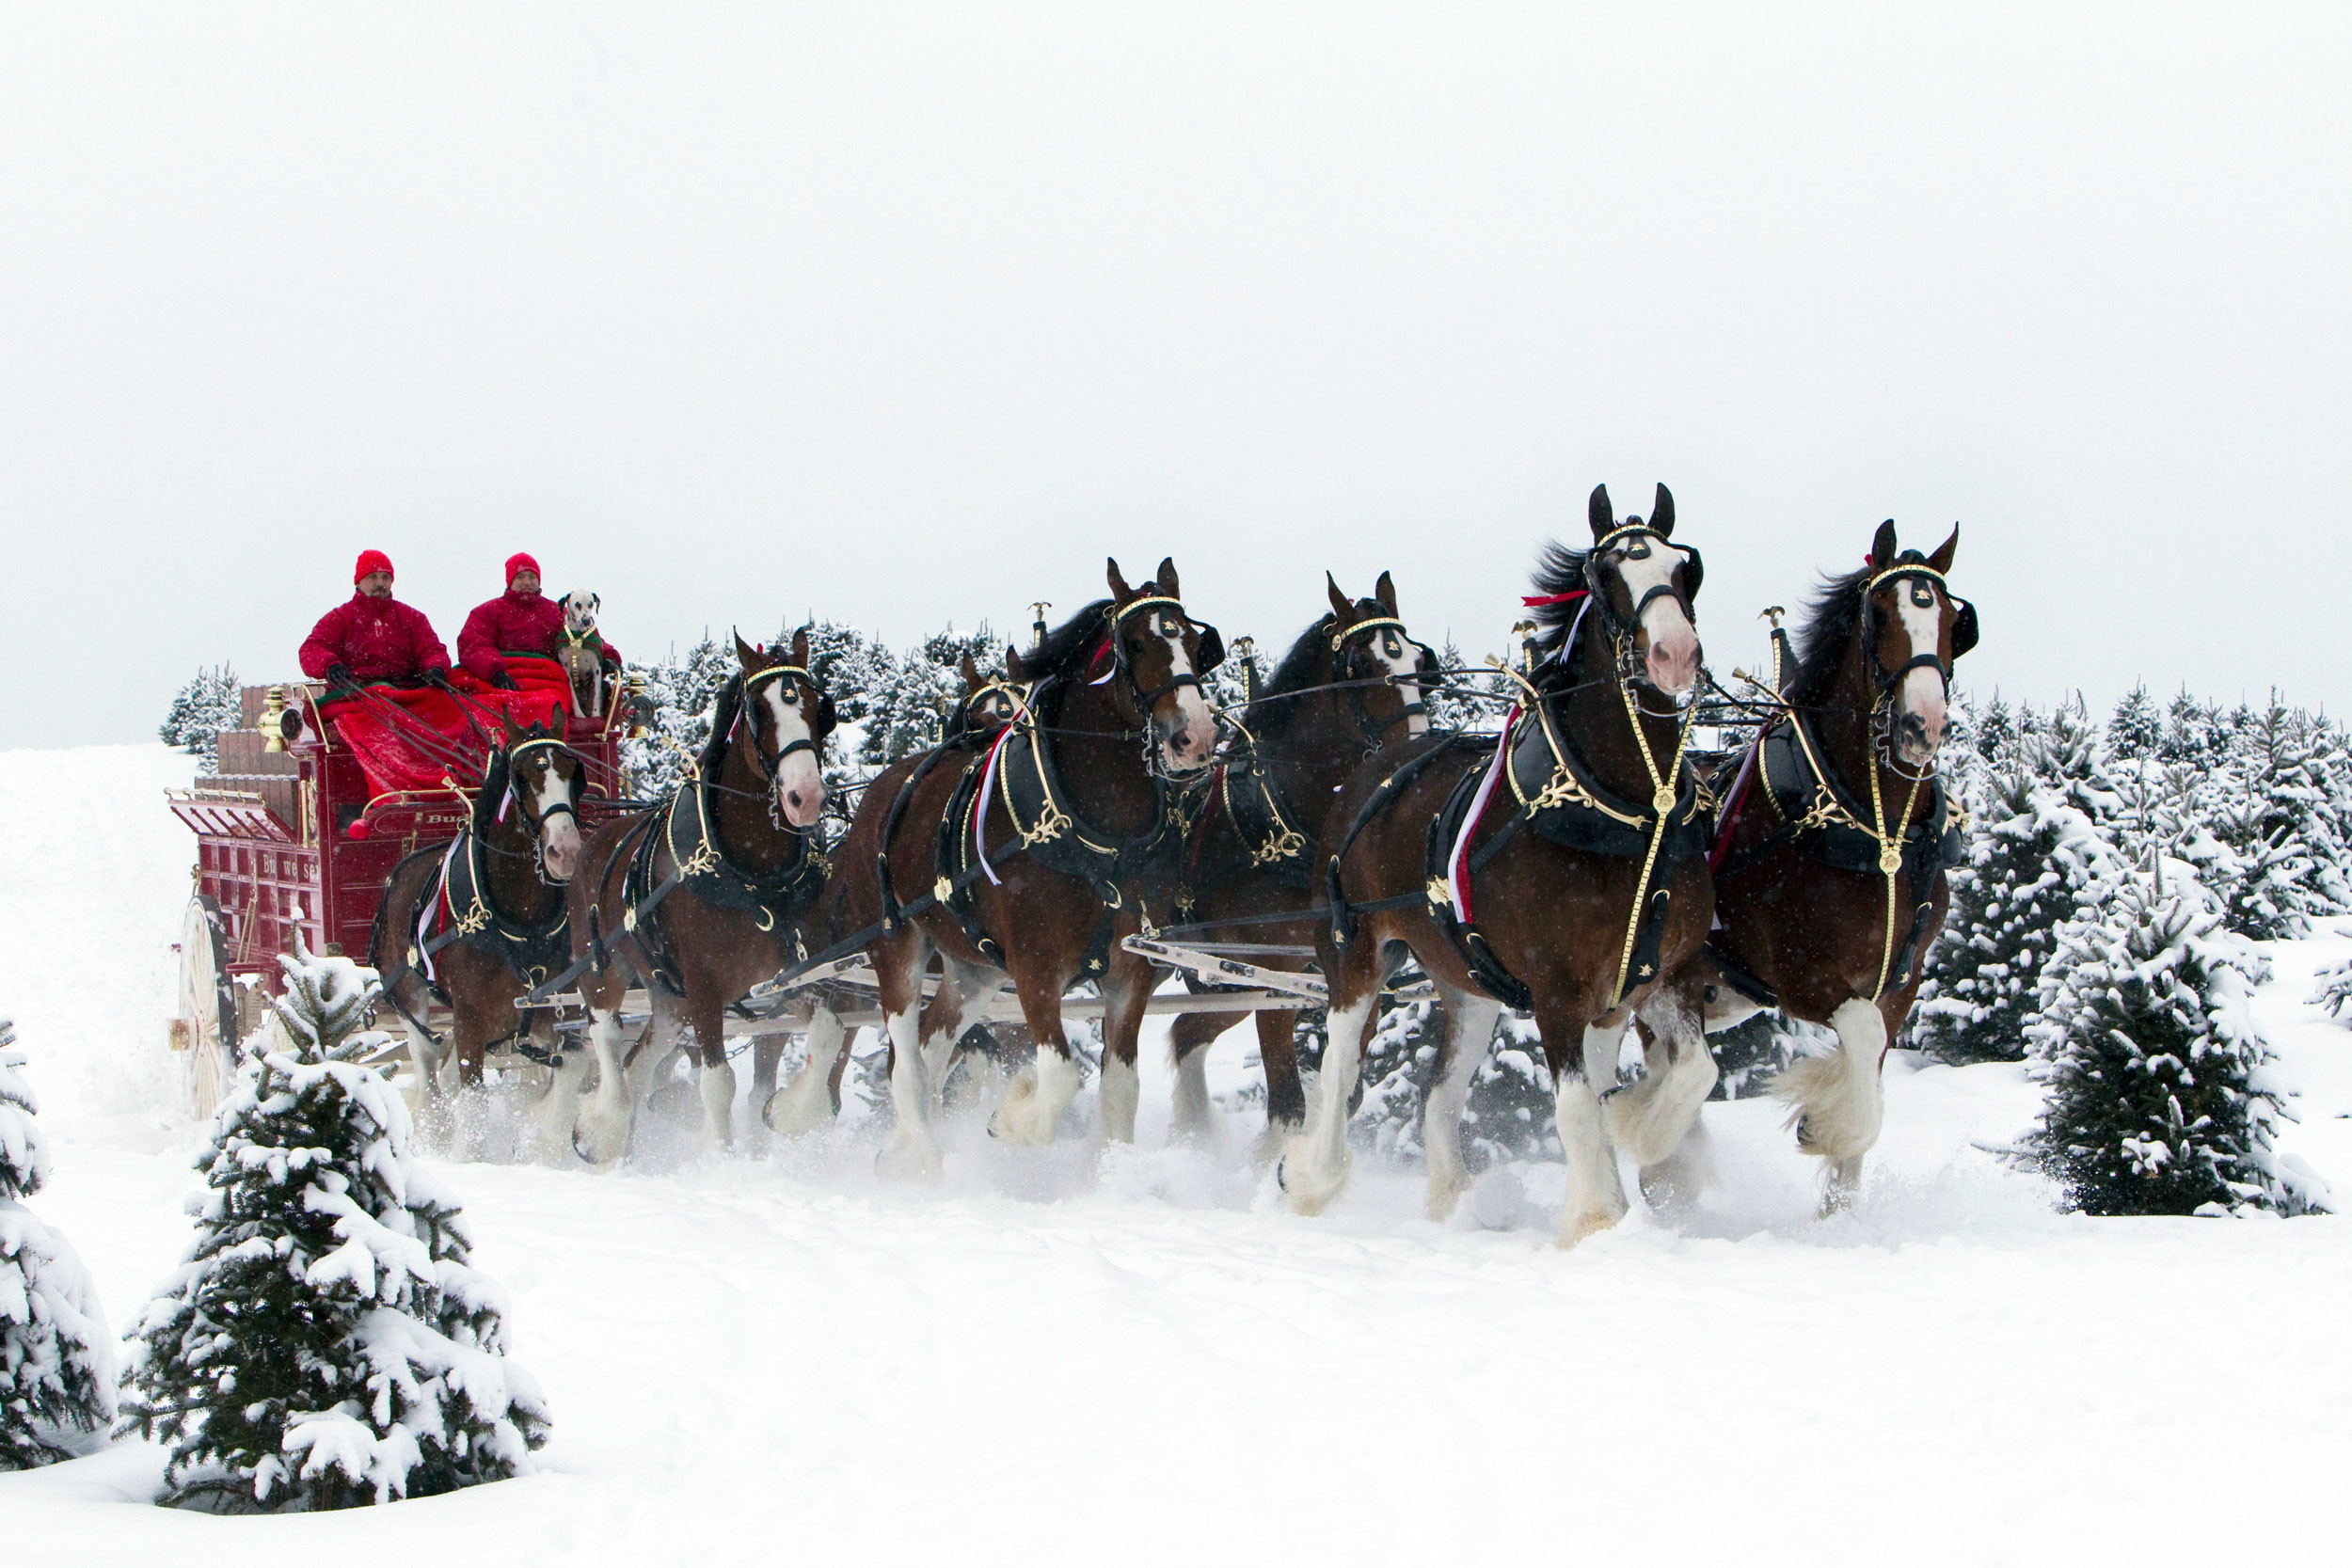 Res: 2500x1667, Photo: Budweiser Clydesdales In The Snow